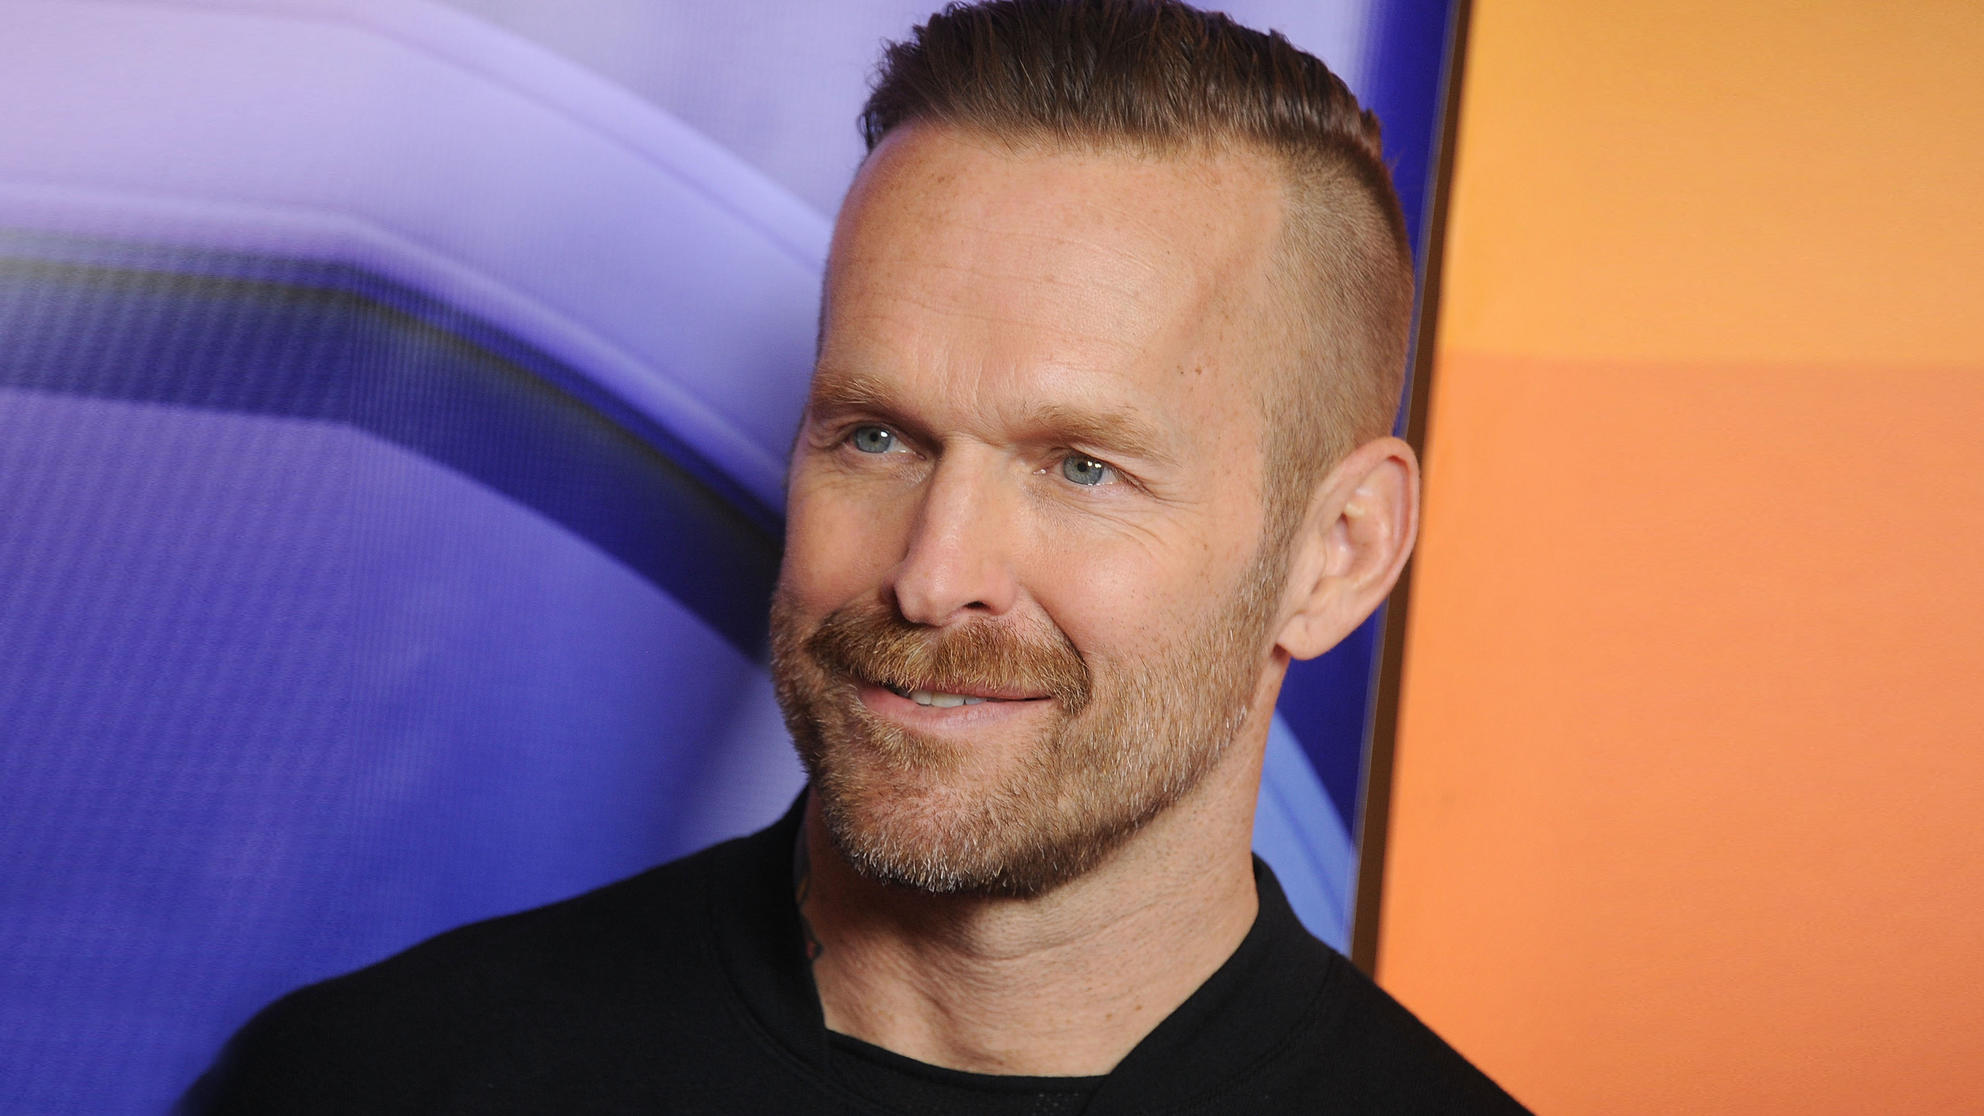 Bob Harper Regrets Overlooking Heart Attack Warning Signs: 'I Kick Myself Over and Over Again'